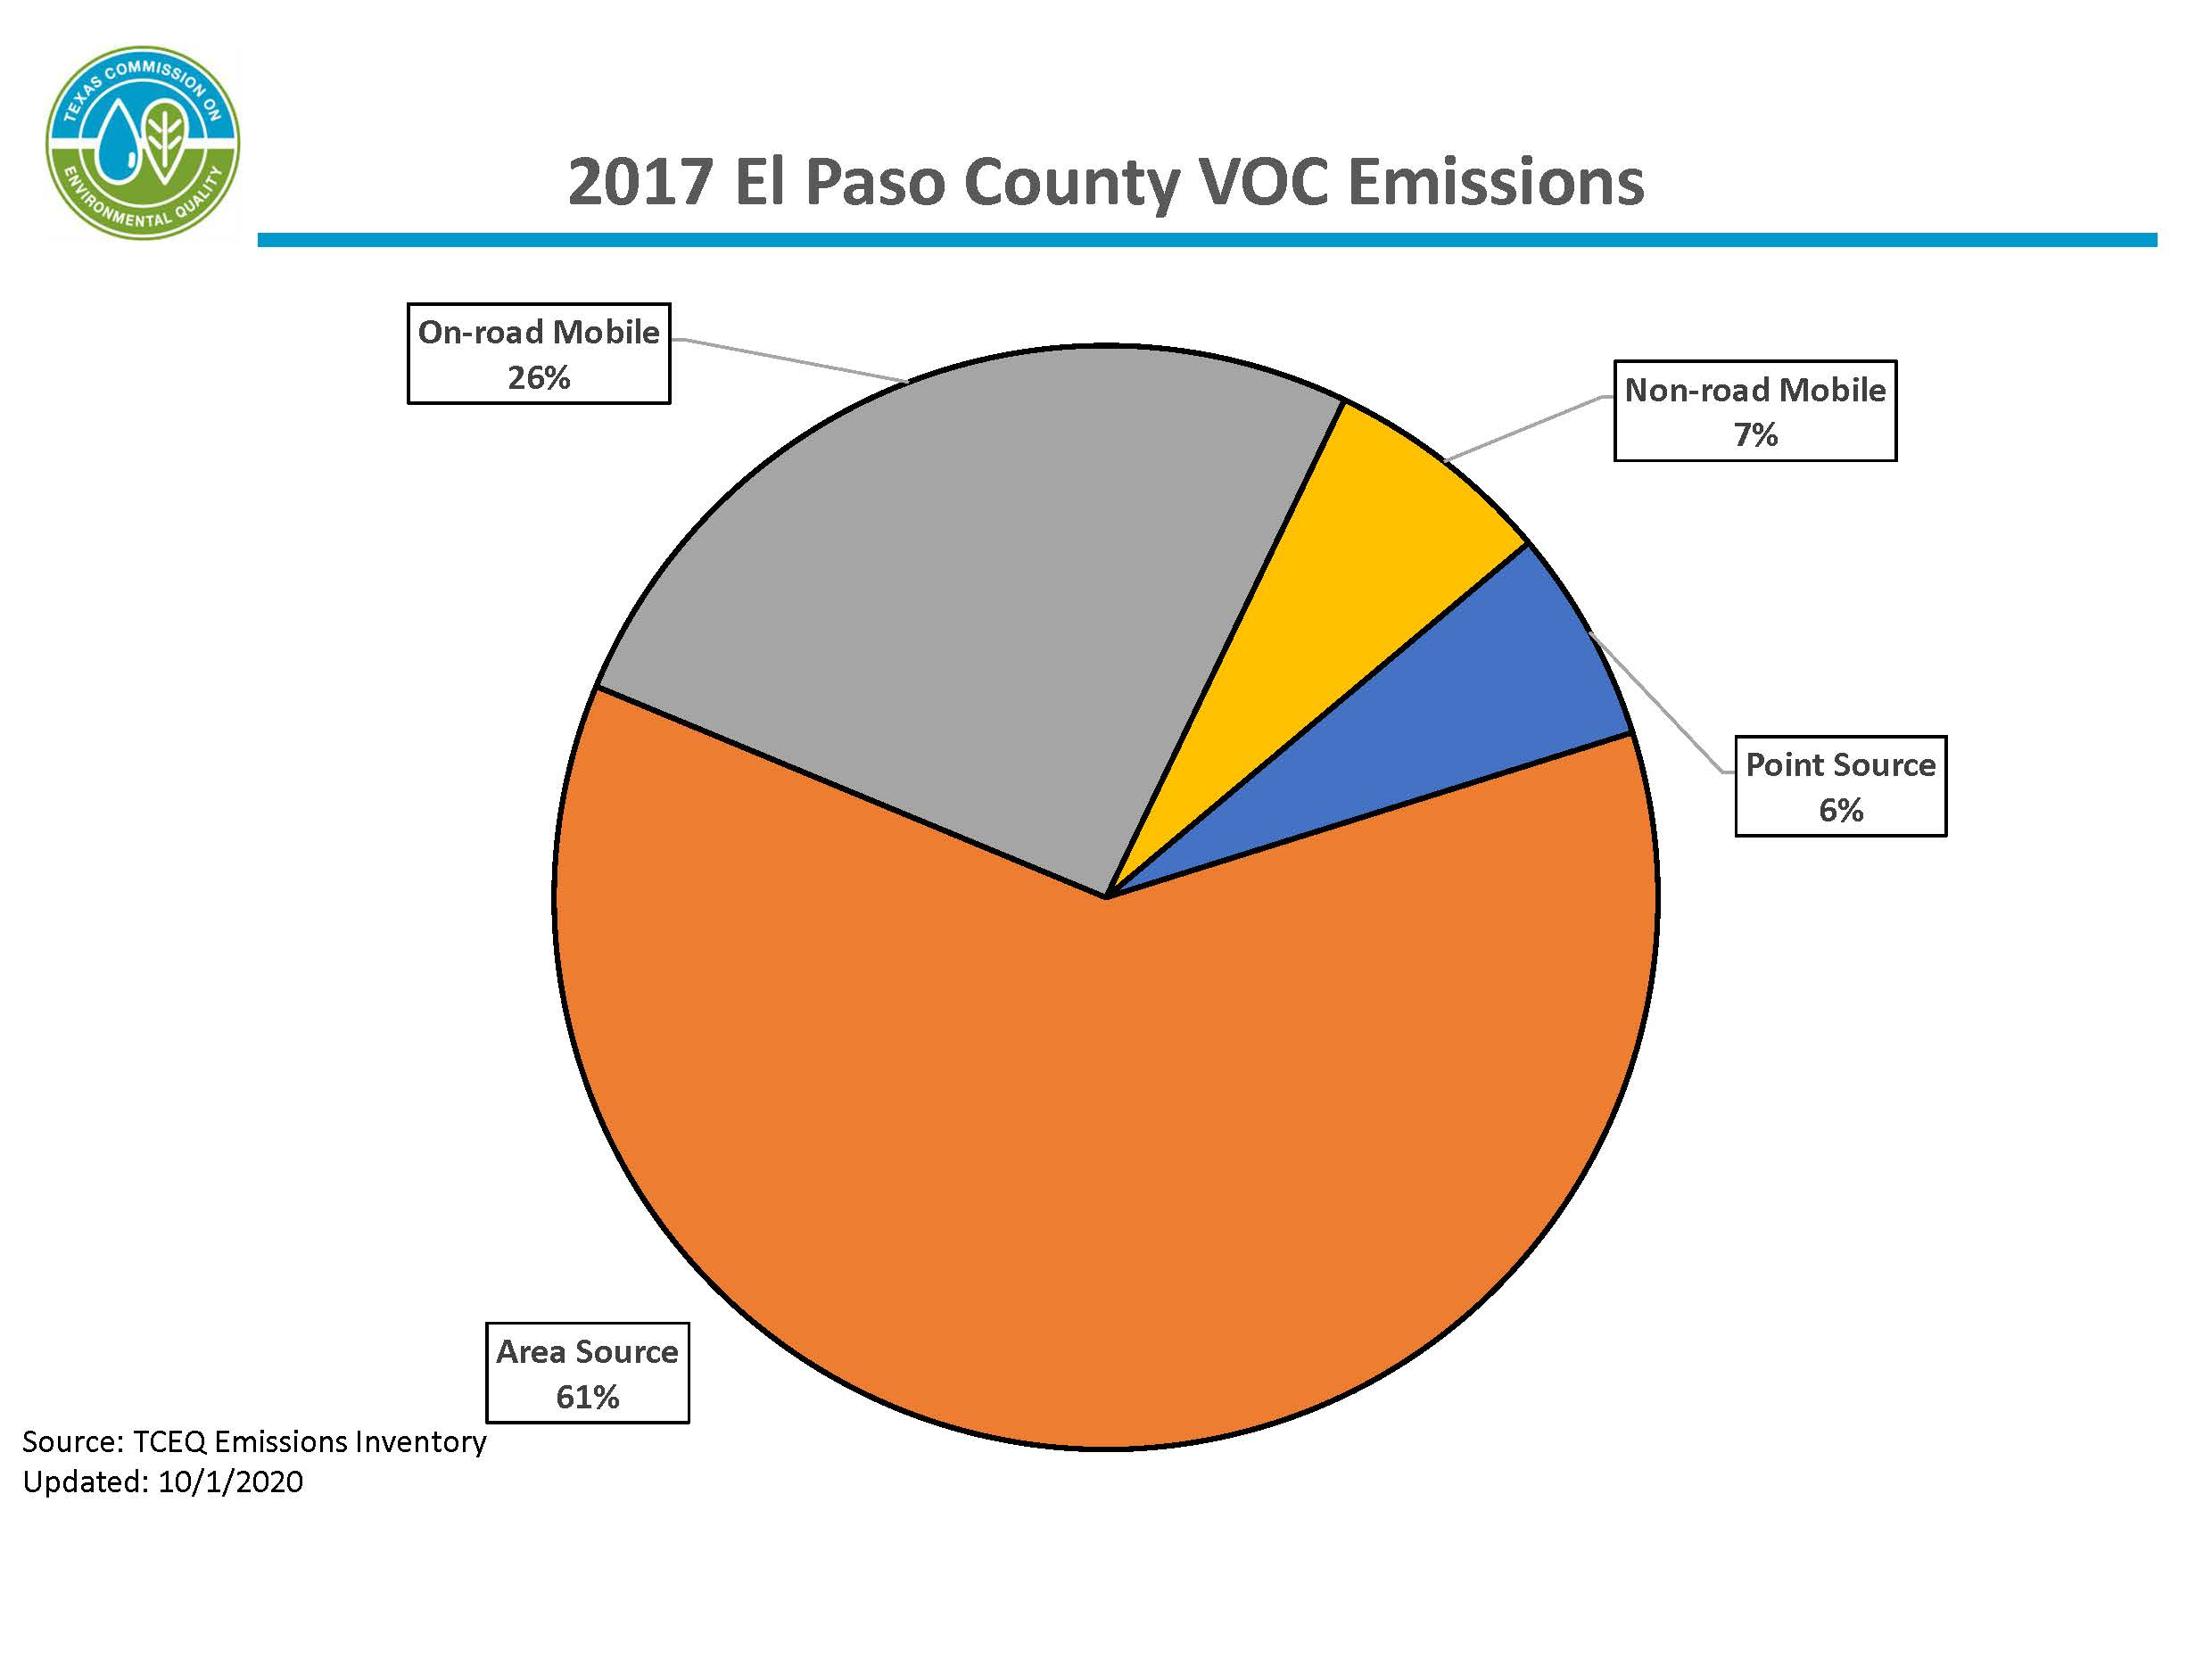 This chart represents calendar year 2017 volatile organic compound emissions for El Paso County. 61 percent of emissions are from area sources, 33 percent of emissions are from mobile sources, and 6 percent of emissions are from point sources.